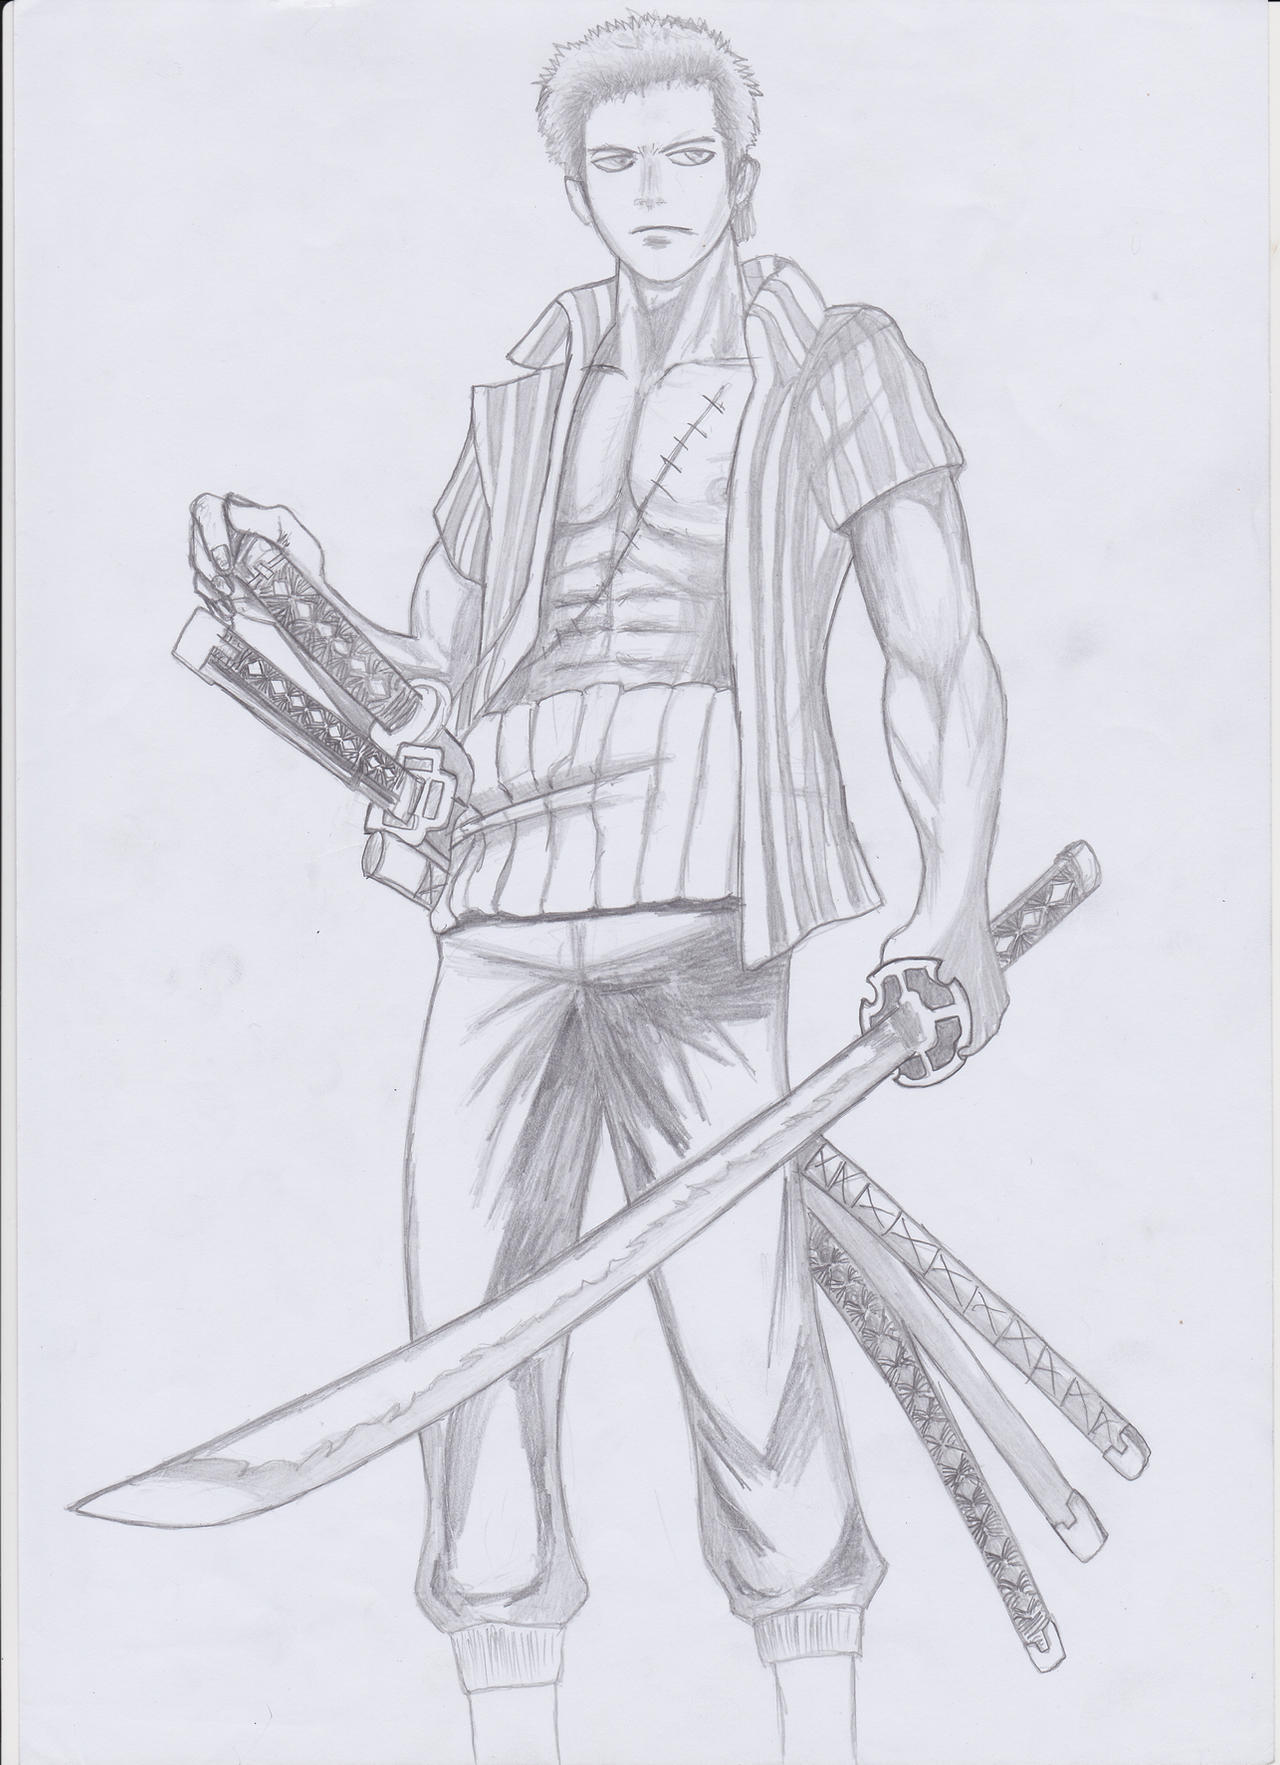 roronoa zoro from one piece by santoryu1 on DeviantArt Zoro Roronoa New World